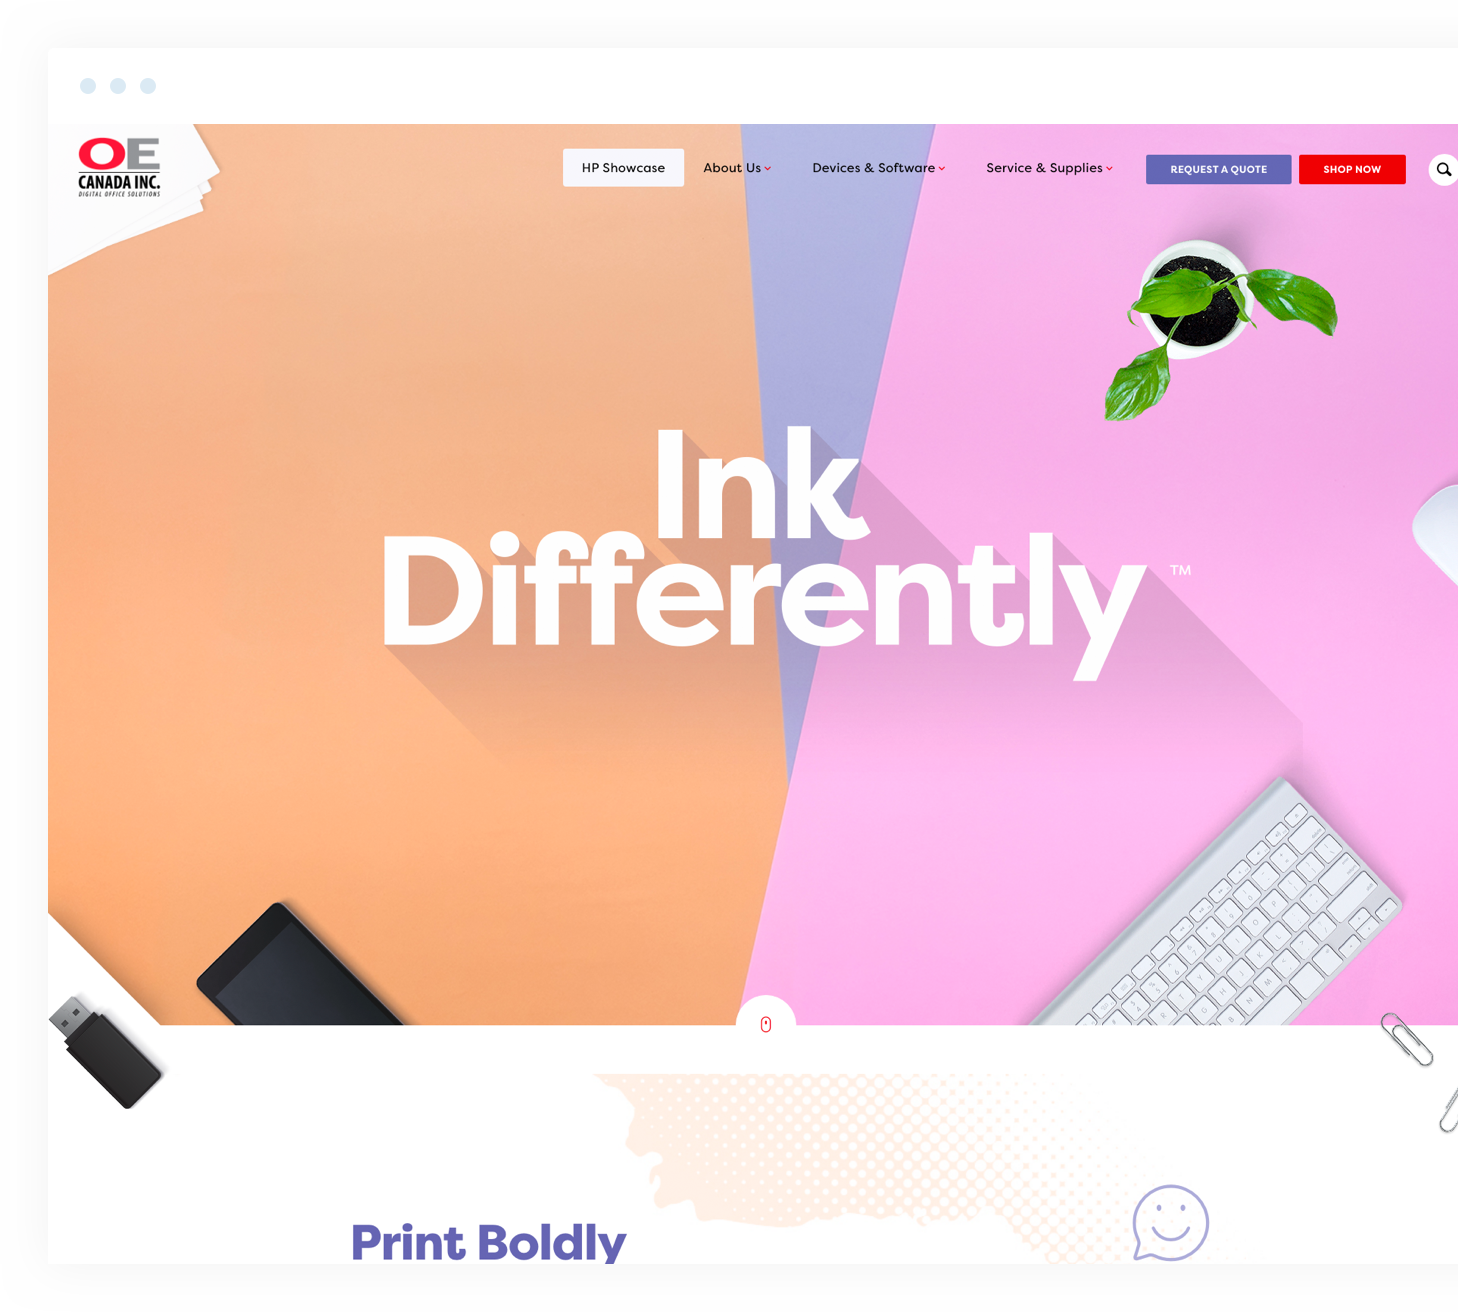 Ink differently home page loaded on a desktop browser